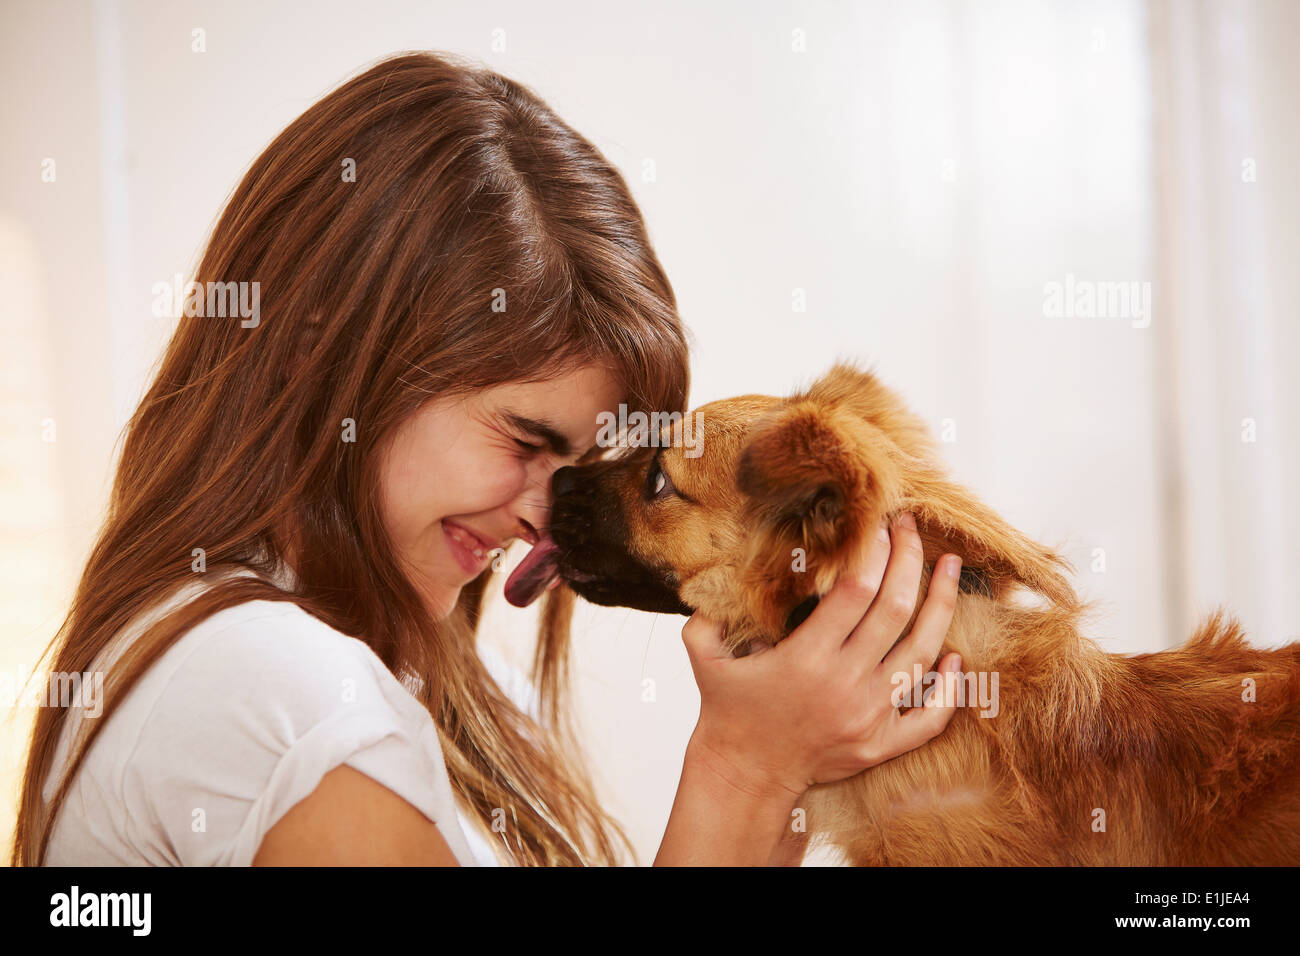 Young woman having face licked by pet dog - Stock Image